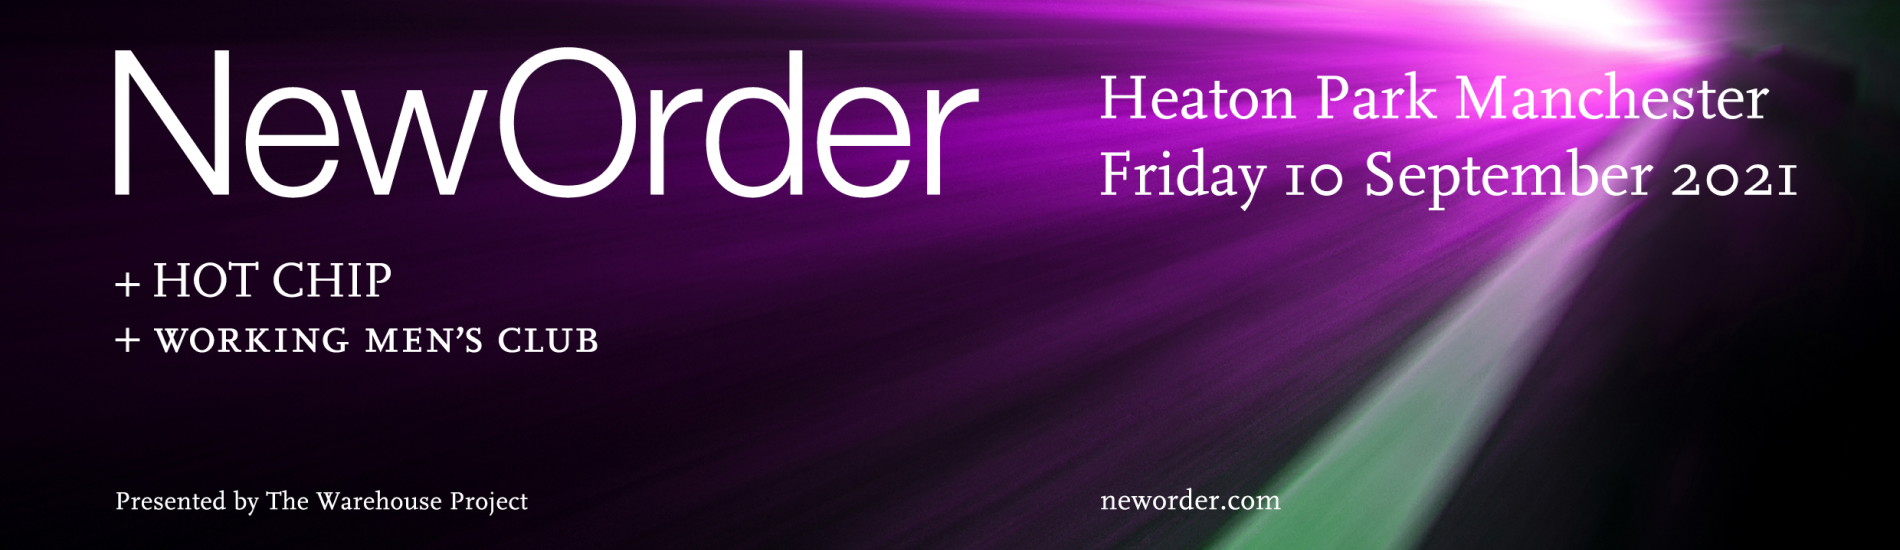 New Order at Heaton Park